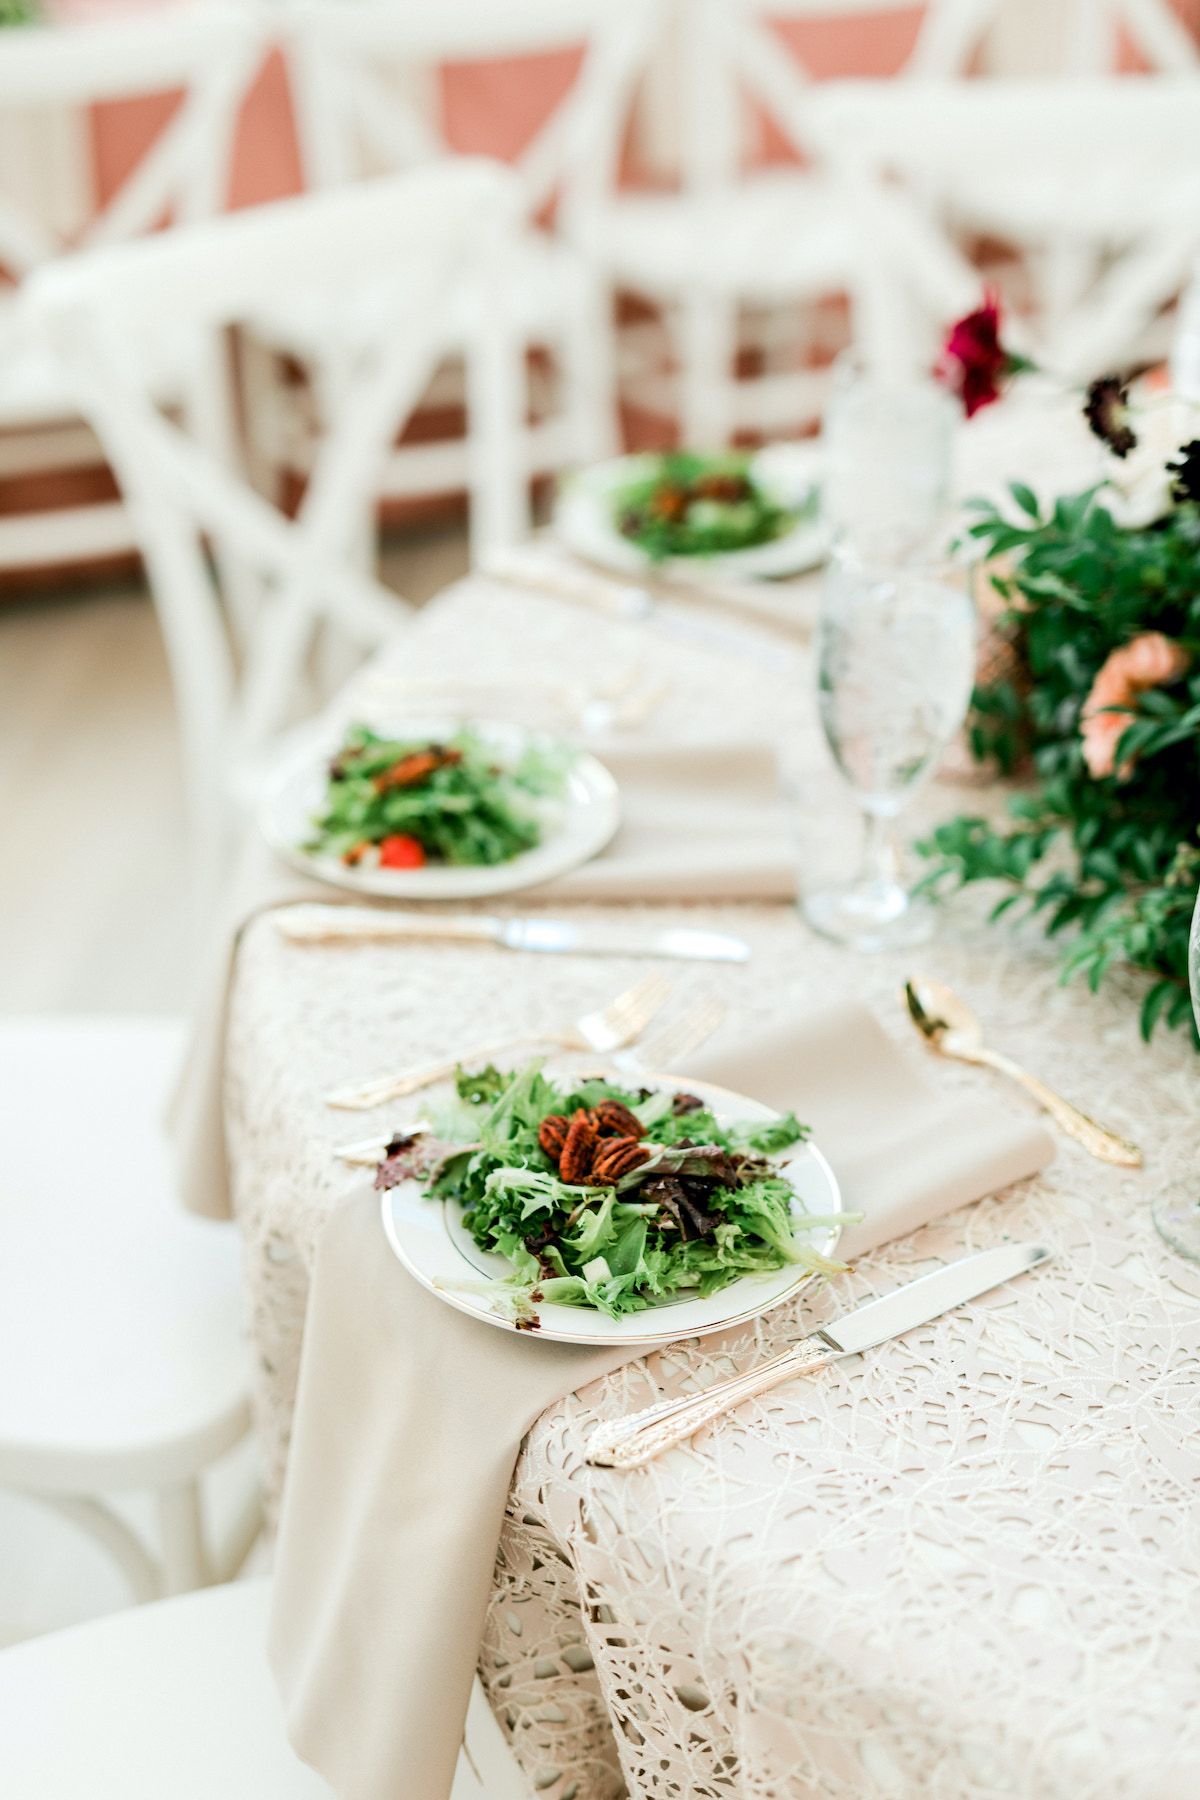 elegant white place settings with salad